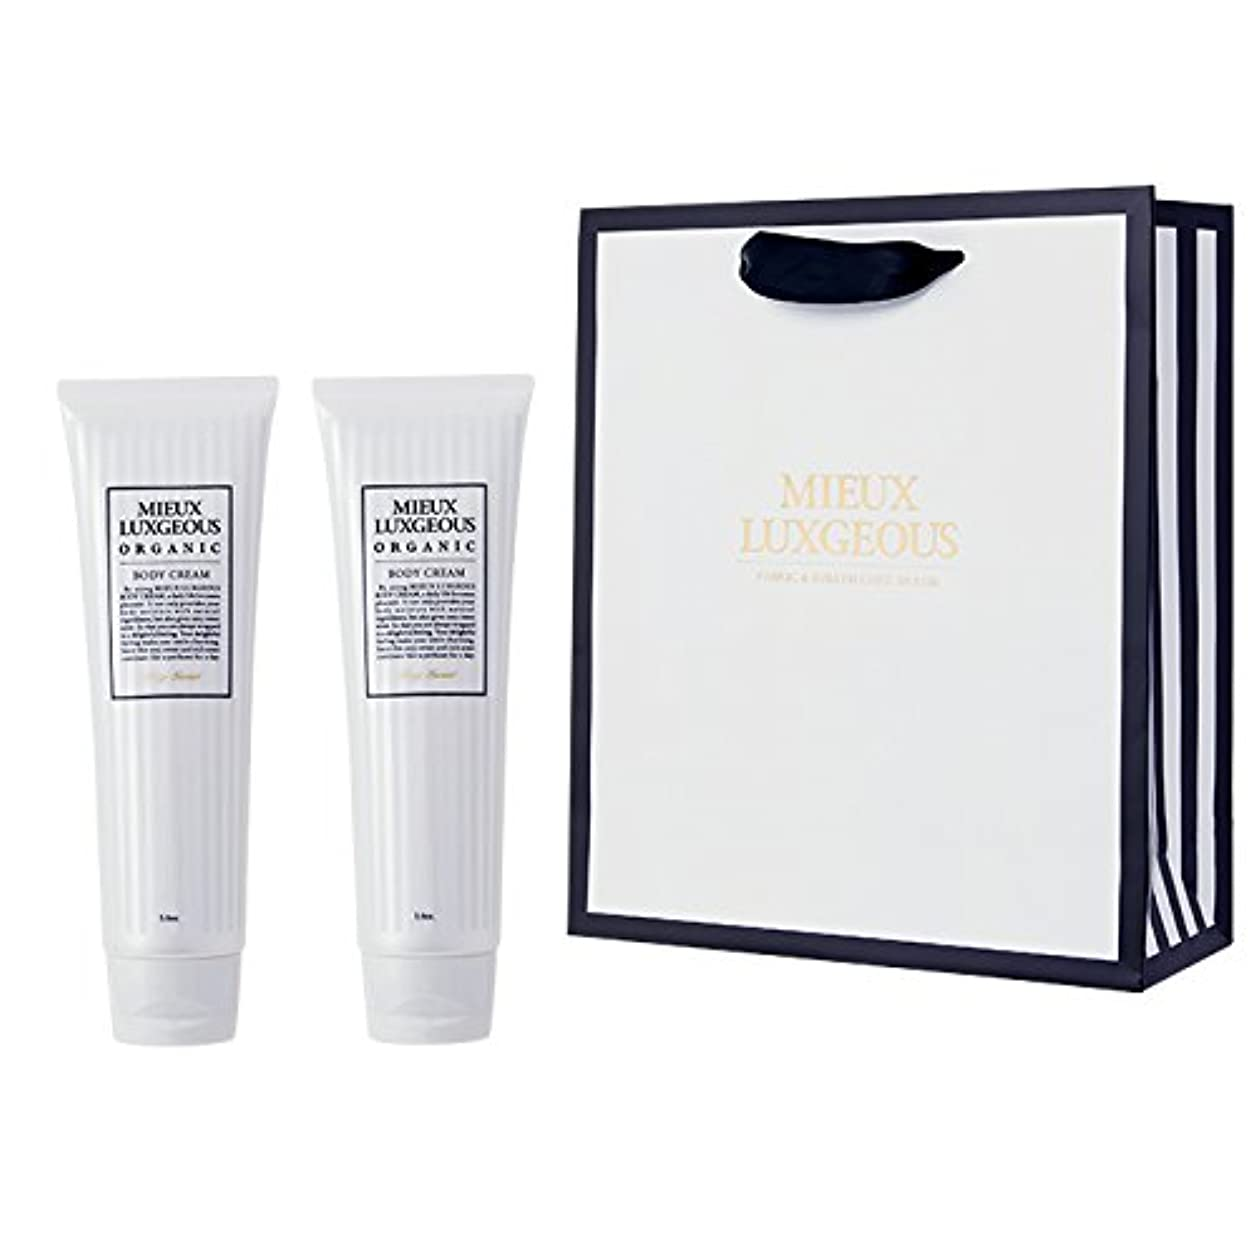 ミューラグジャス Body Cream 2本set with Paperbag02